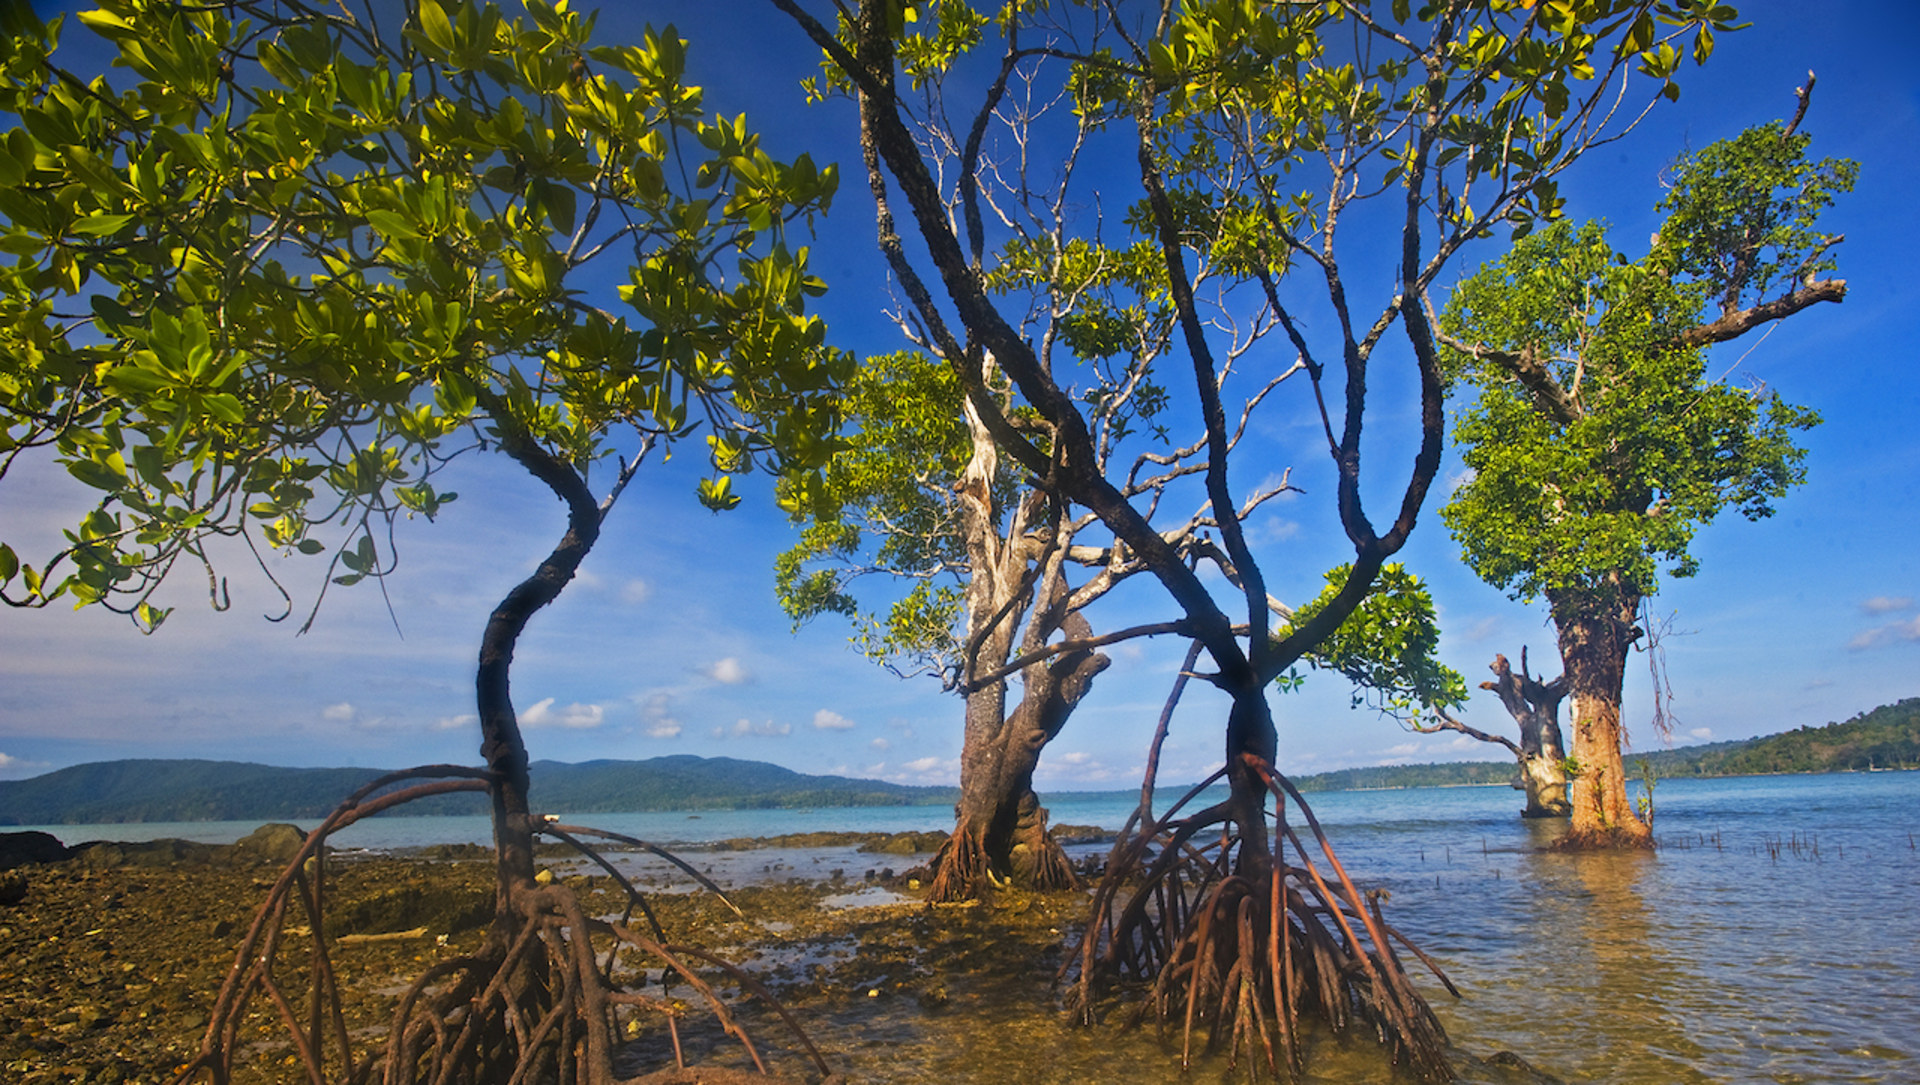 Sentinels of the Coast: The Mangroves of Andaman Islands and Tamil Nadu